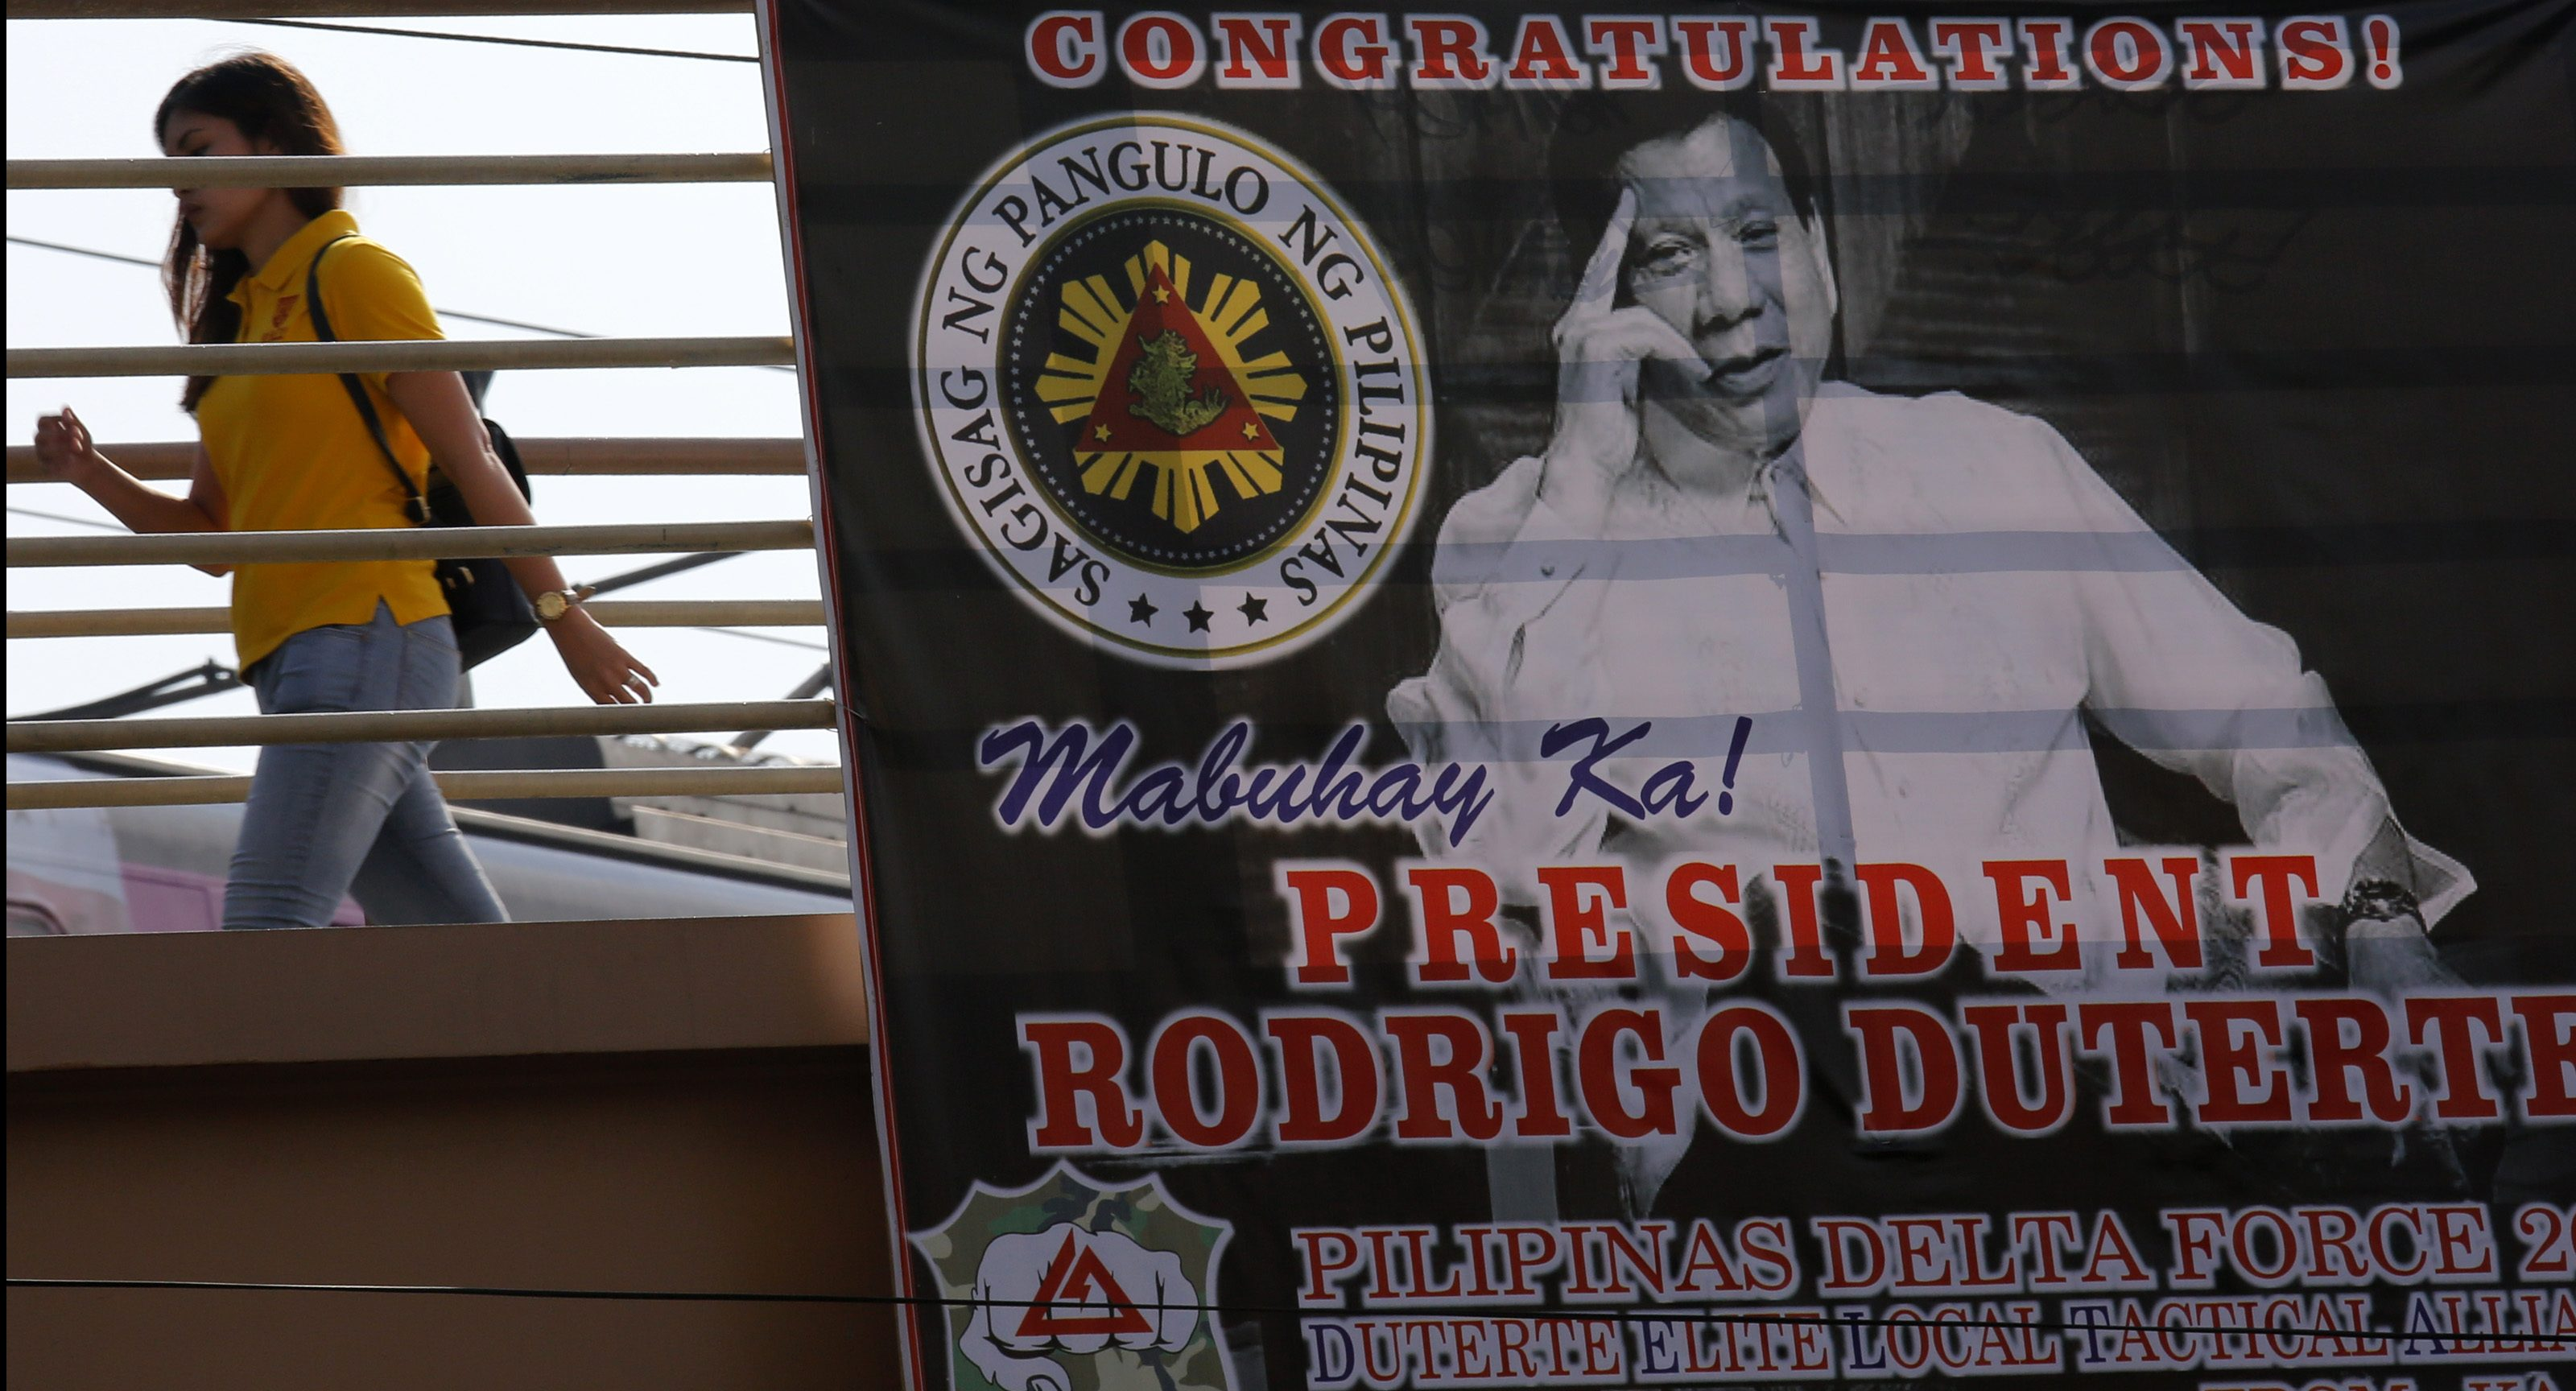 epa05397127 A President Duterte greeting poster hangs on an overpass pedestrain lane leading to the Malacanang presidential palace on the day before President-elect Rodrigo Duterte's inauguration in Manila, Philippines, 29 June 2016. Filipino President-elect Rodrigo Duterte said he will seek to reinstate the death penalty in the country for retribution against criminals, according to local media reports. Duterte has declared a war on drugs and encouraged local police forces to intensify their anti-drug operations. Duterte is set to take his seat as the 16th President of the Republic of the Philippines on 30 June.  EPA/FRANCIS R. MALASIG